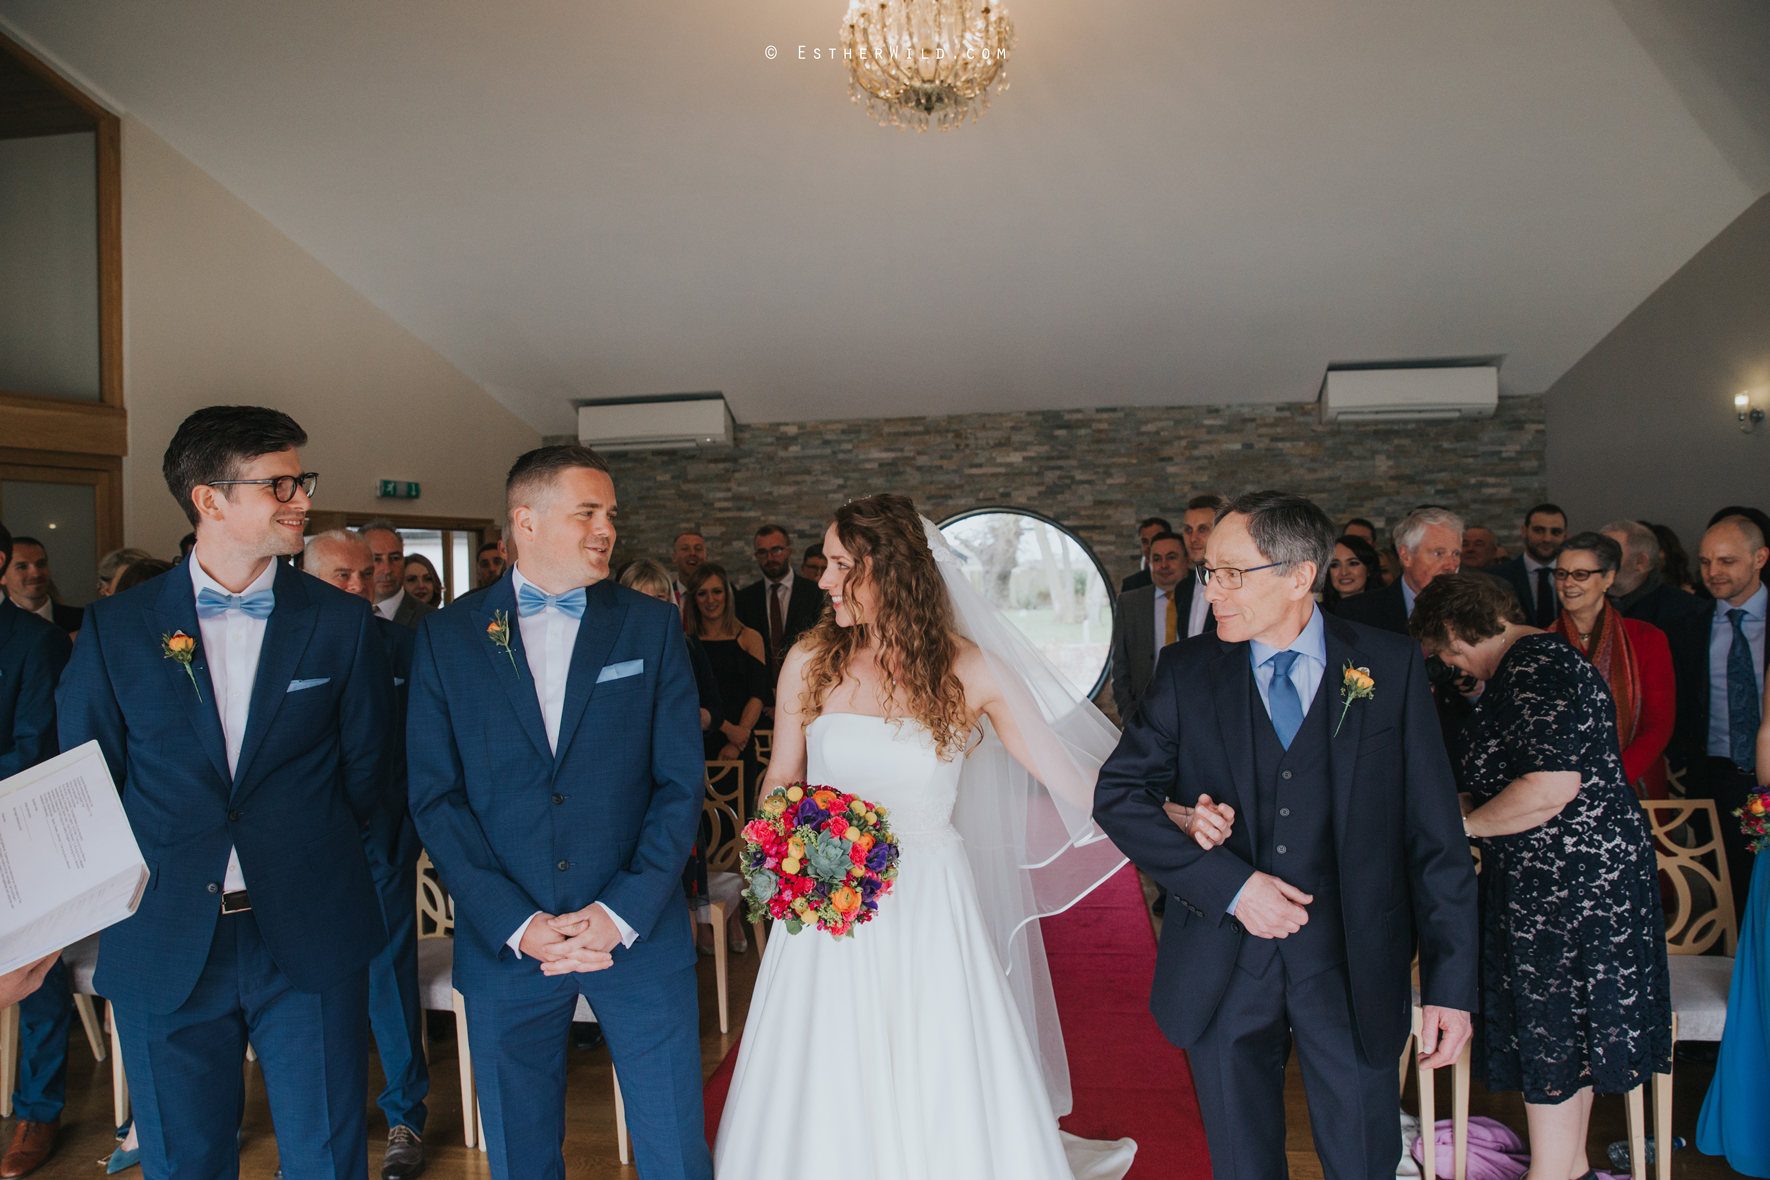 The_BoatHouse_Wedding_Venue_Ormesby_Norfolk_Broads_Boat_Wedding_Photography_Esther_Wild_Photographer_IMG_1040.jpg